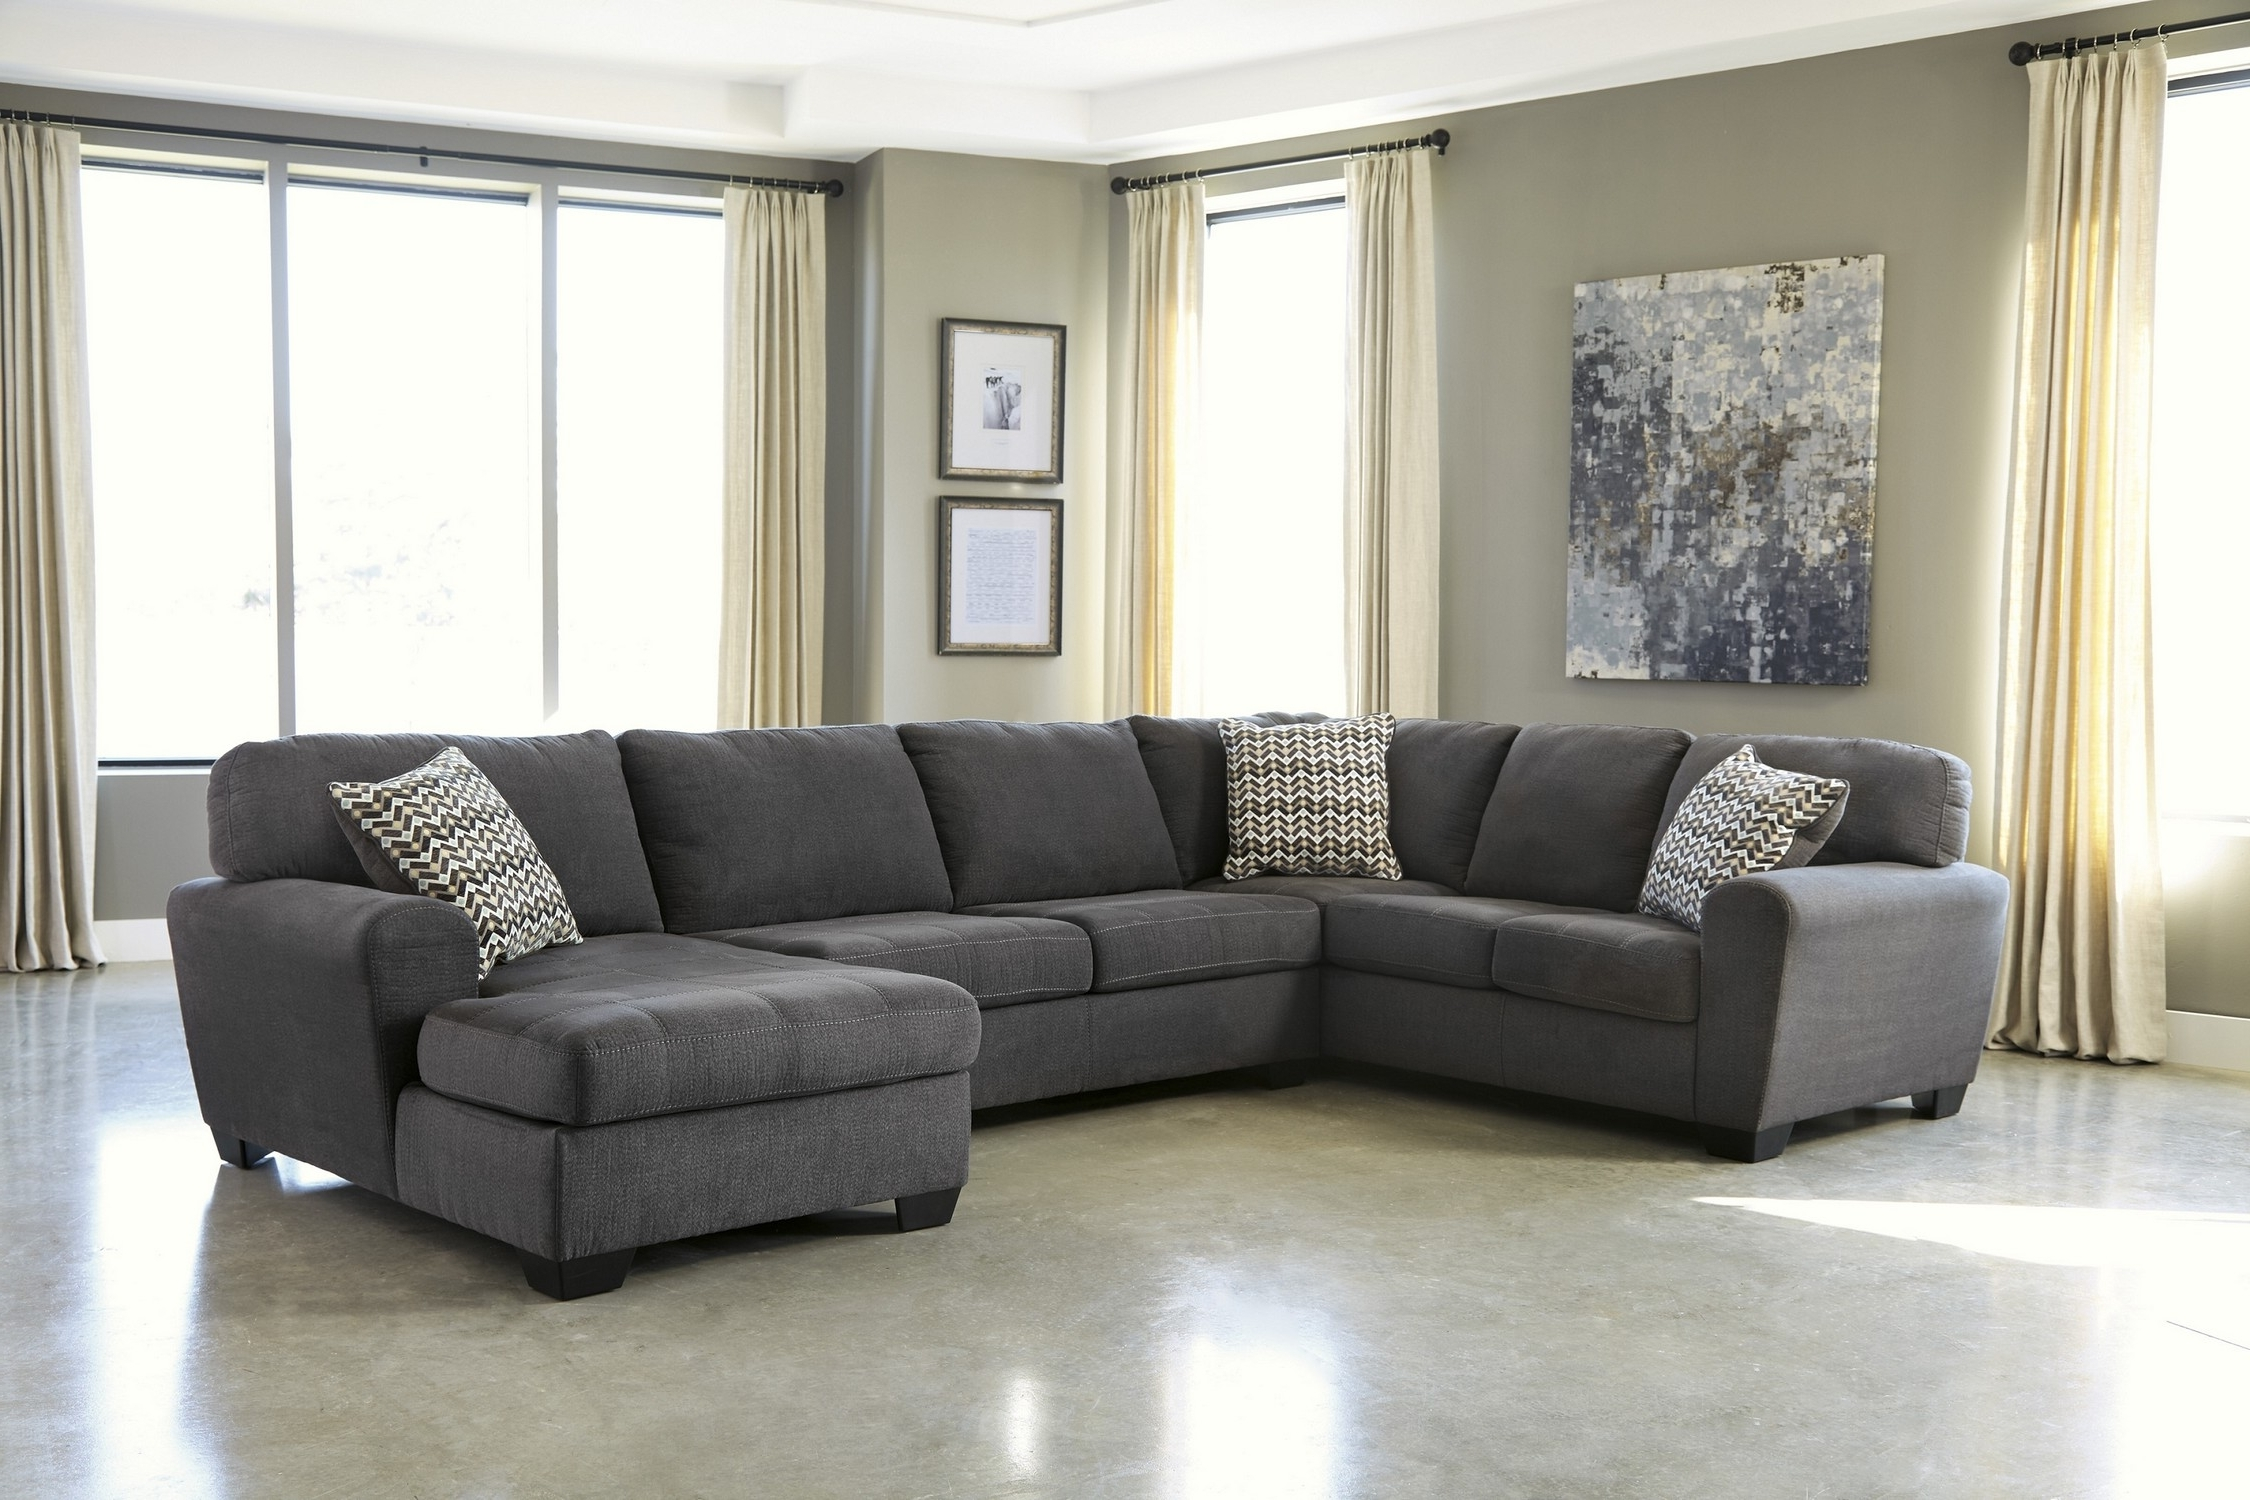 Gray Living Room Sectionals Ashley Furniture Alenya Sectional With Fashionable Gray Sectionals With Chaise (View 6 of 15)